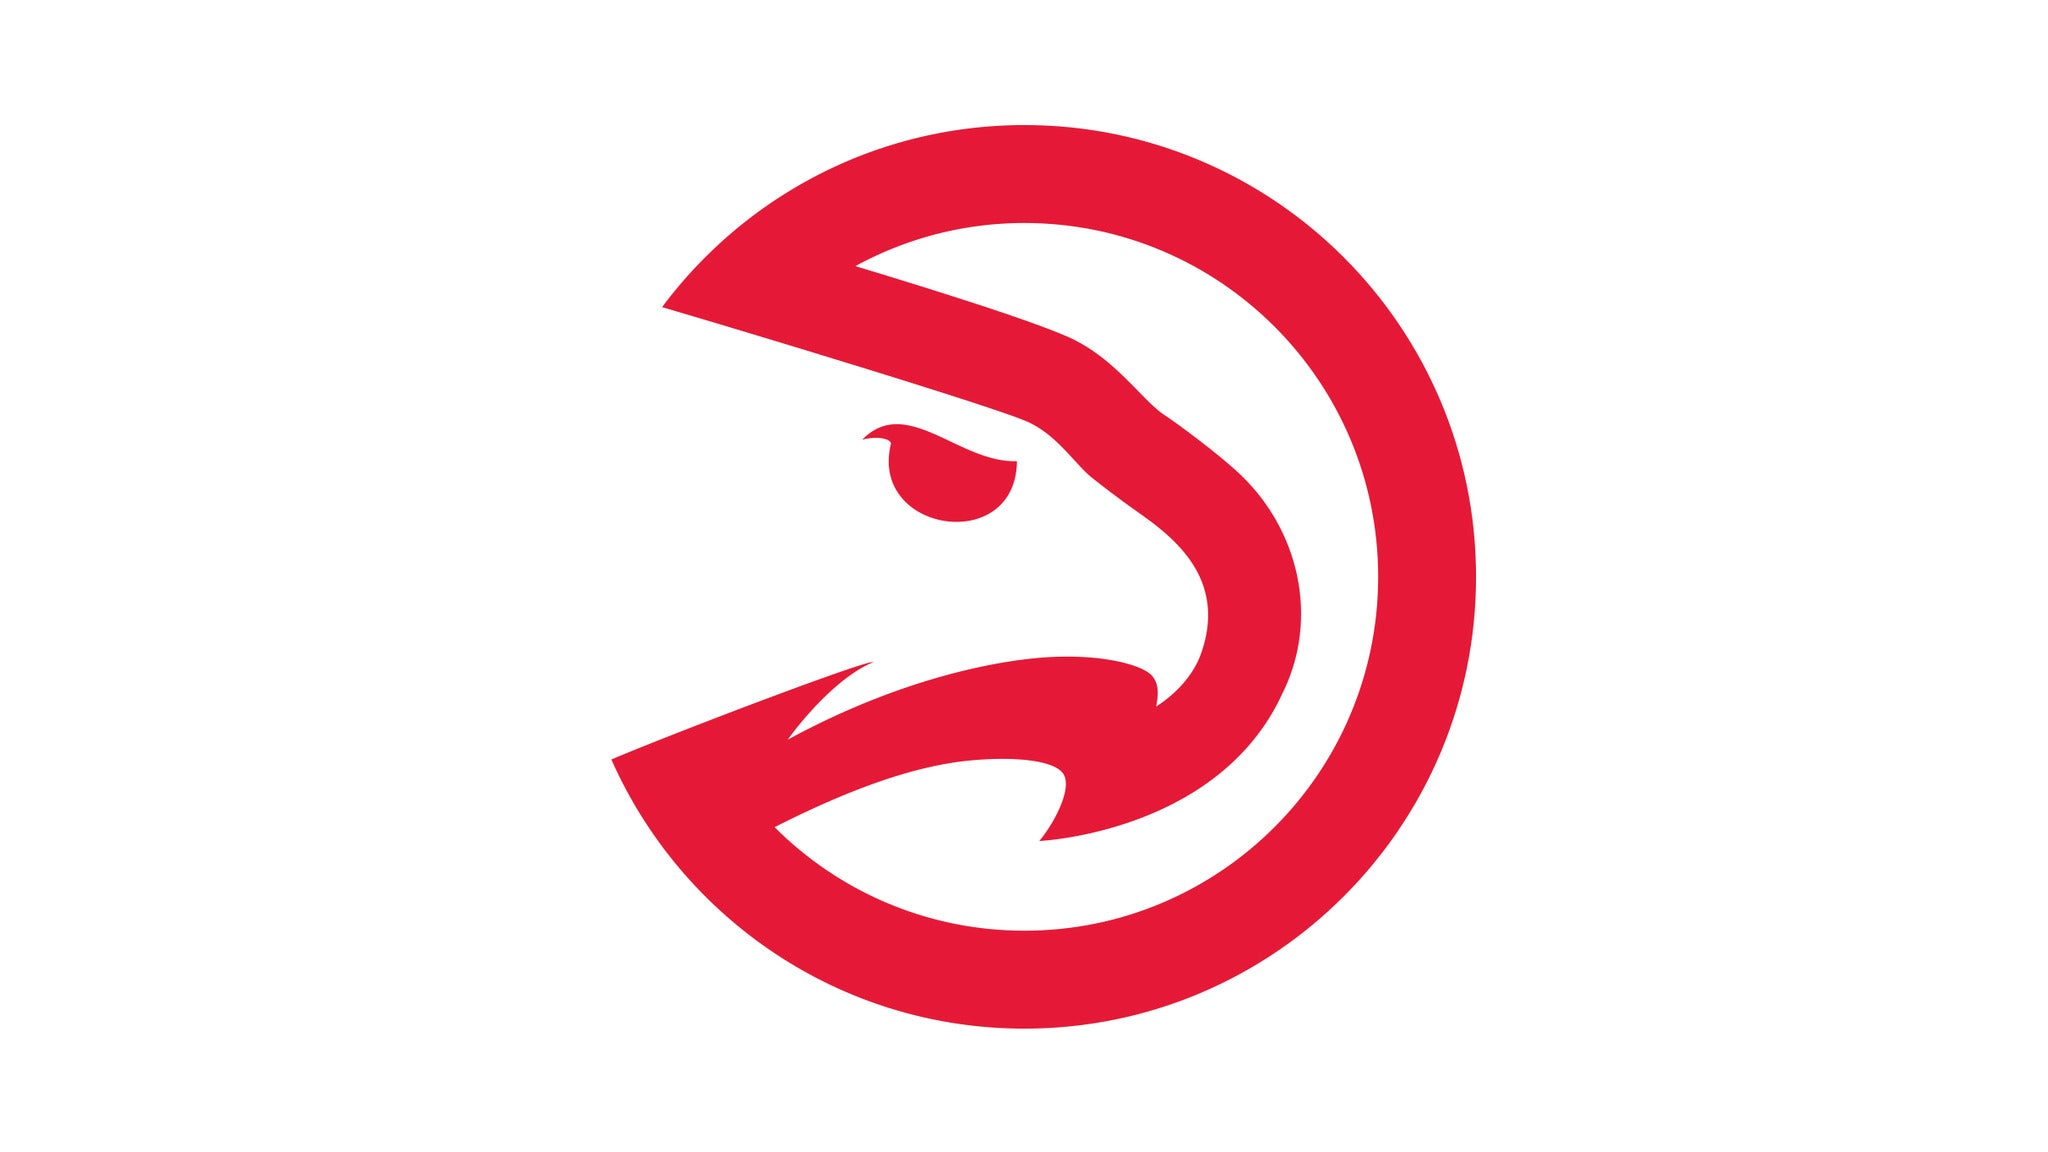 Atlanta Hawks vs. New Orleans Pelicans at State Farm Arena - Atlanta, GA 30303